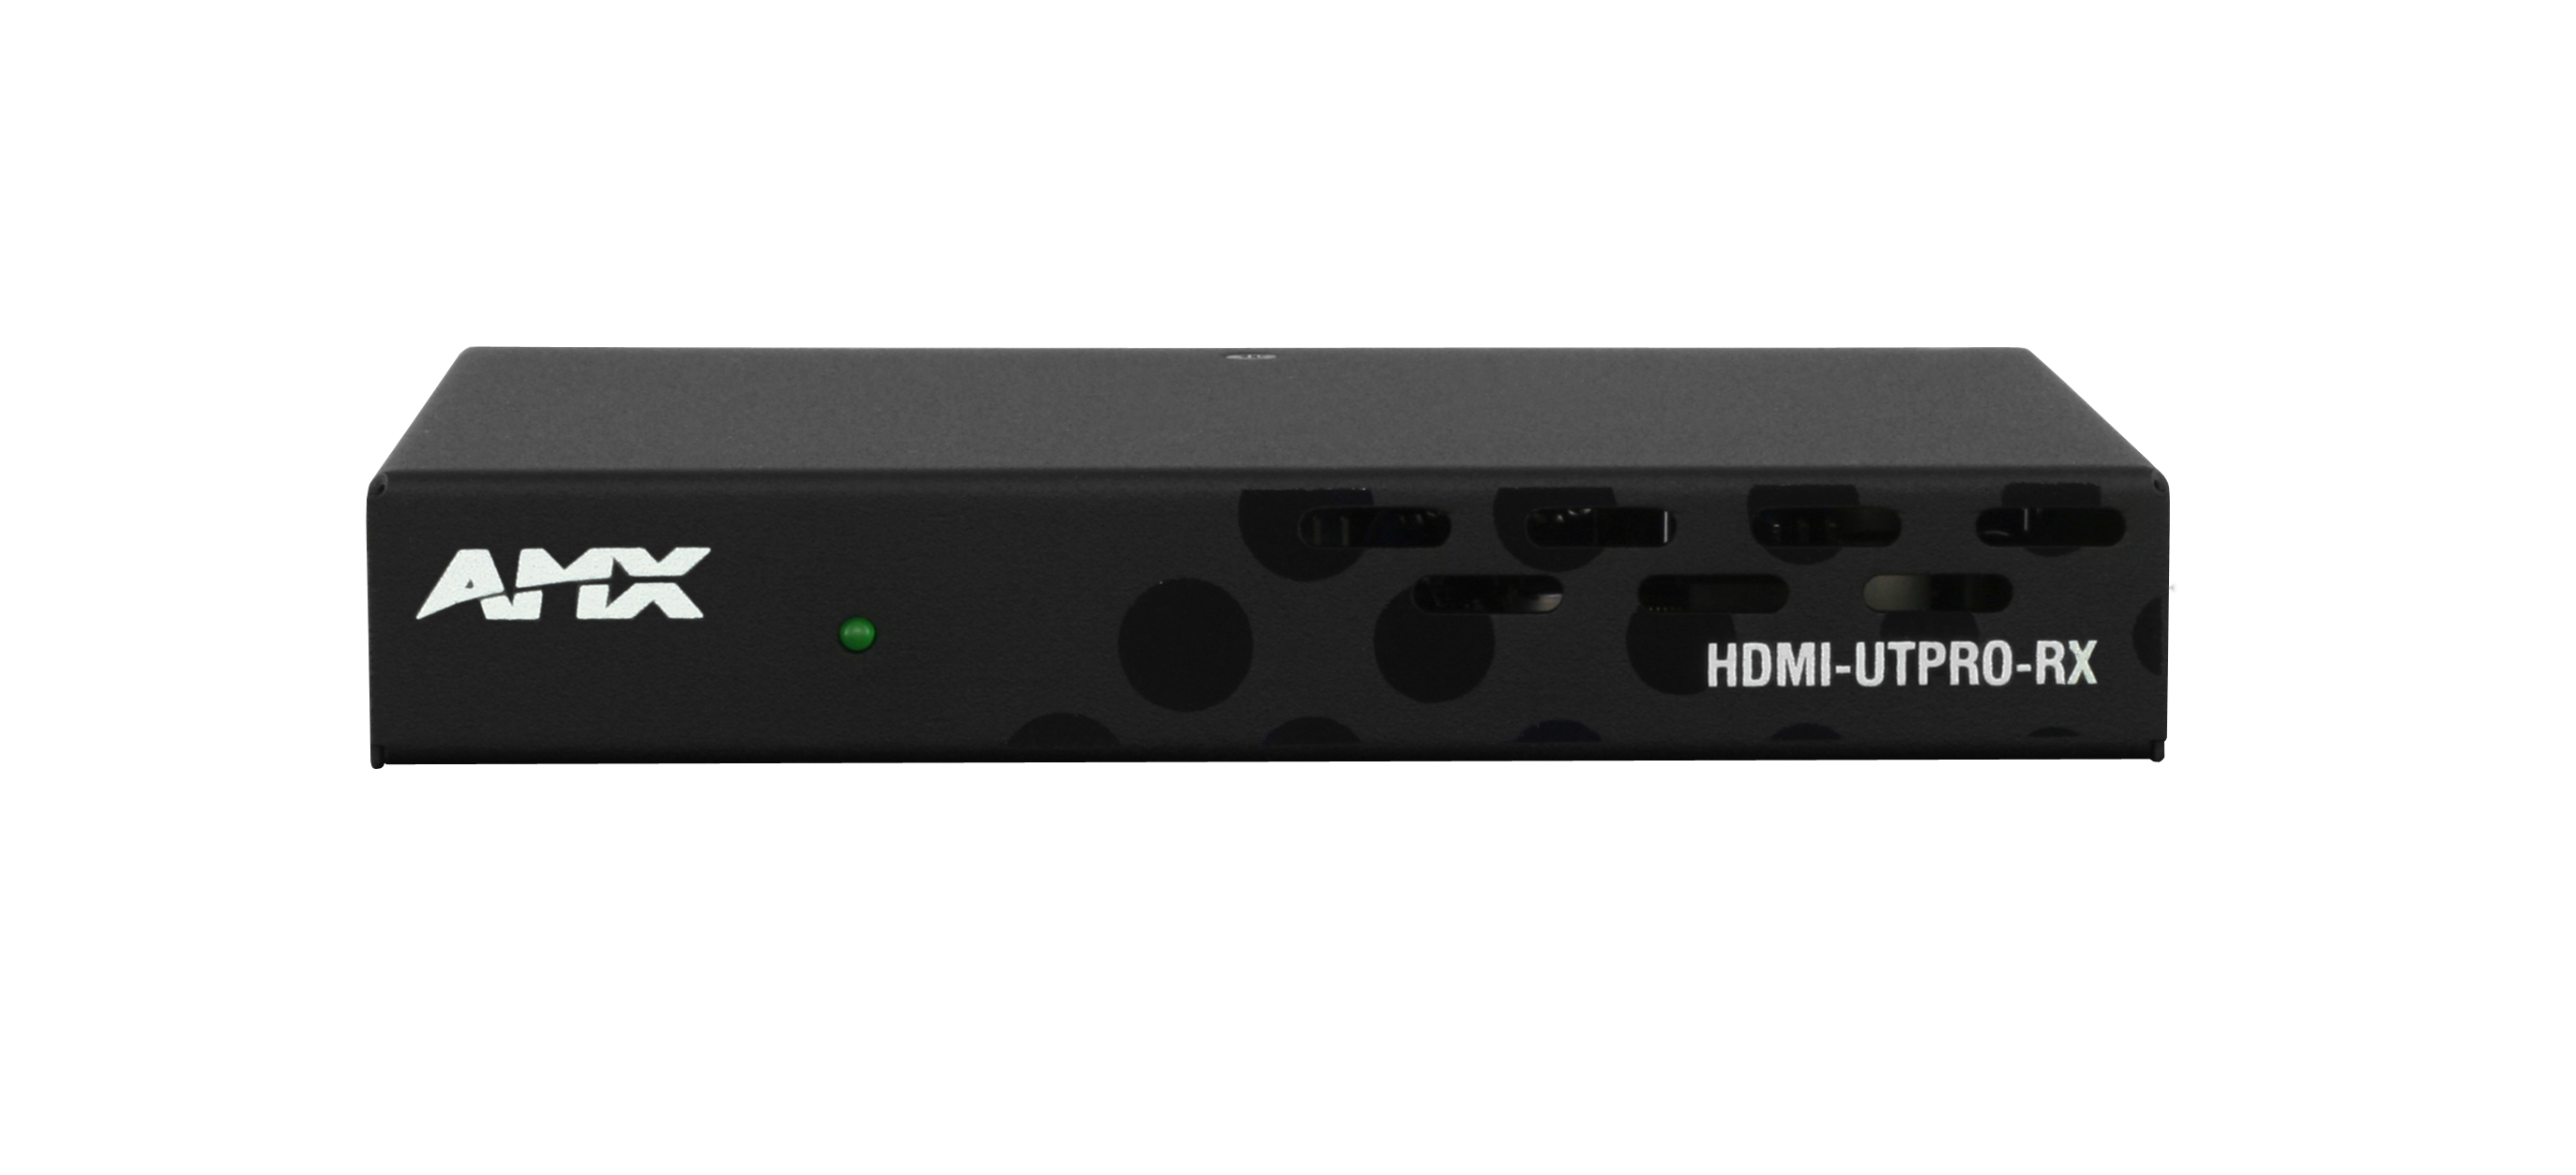 HDMI-UTPRO-RX Front High